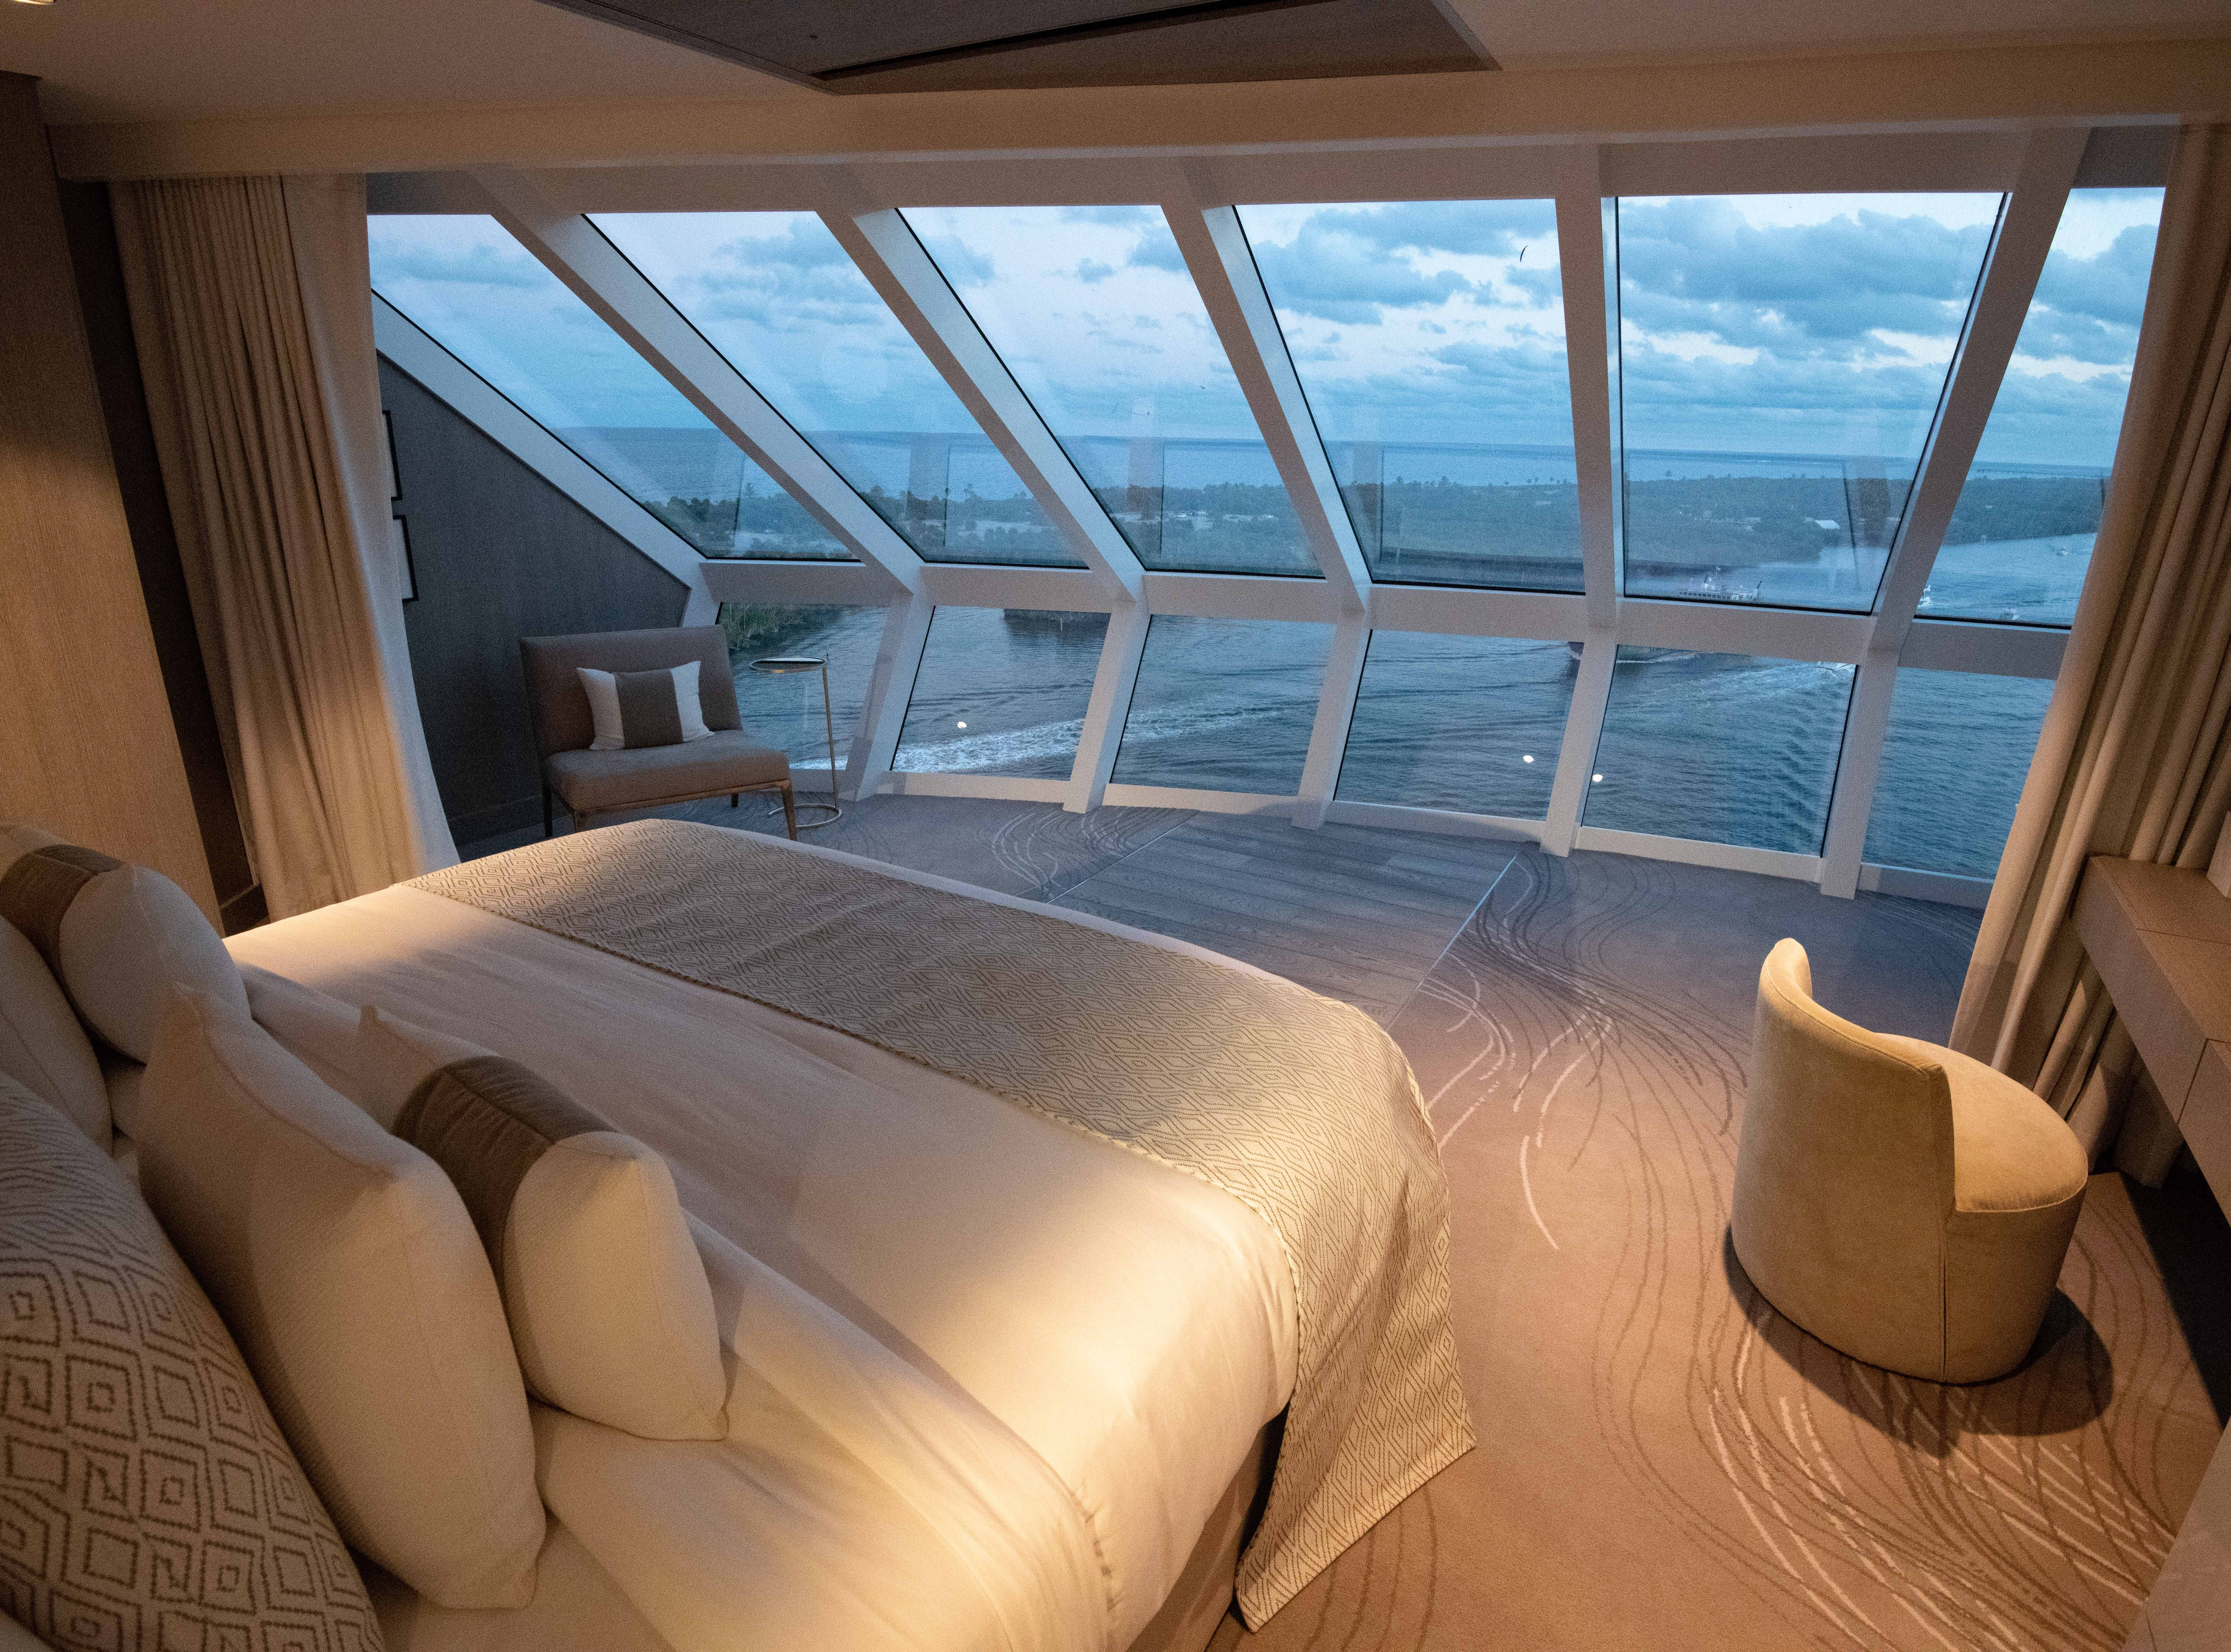 The Iconic Suites on Celebrity Edge are located above the bridge of the ship where the captain resides and offer breathtaking views through floor-to-ceiling panoramic glass. Each of the suites has two bedrooms, a dining room, living room and expansive outdoor balcony area.